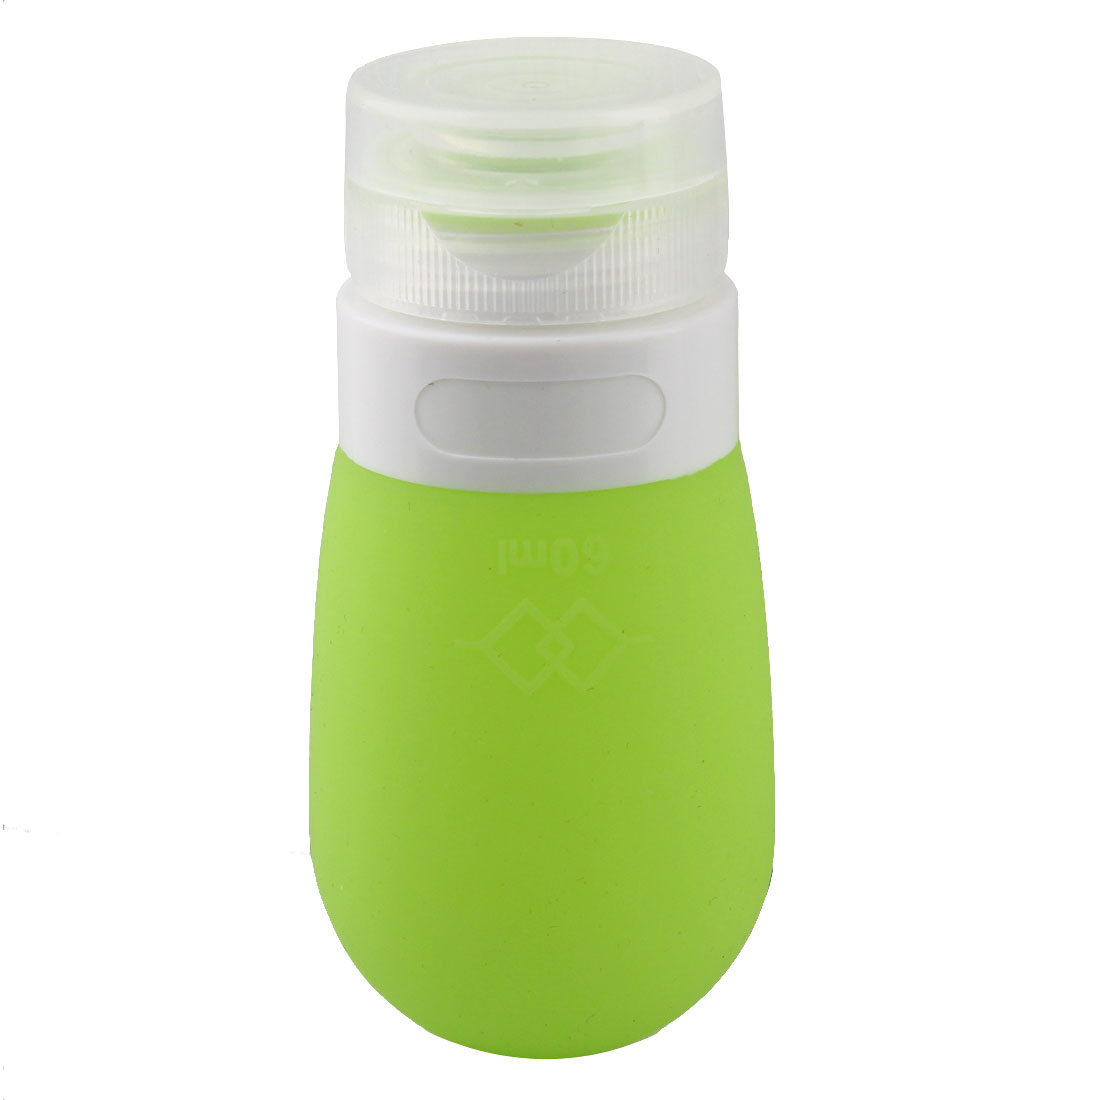 Travel Plastic Cap Silicone Perfume Lotion Cosmetic Bottle Container Pale Green 60ml